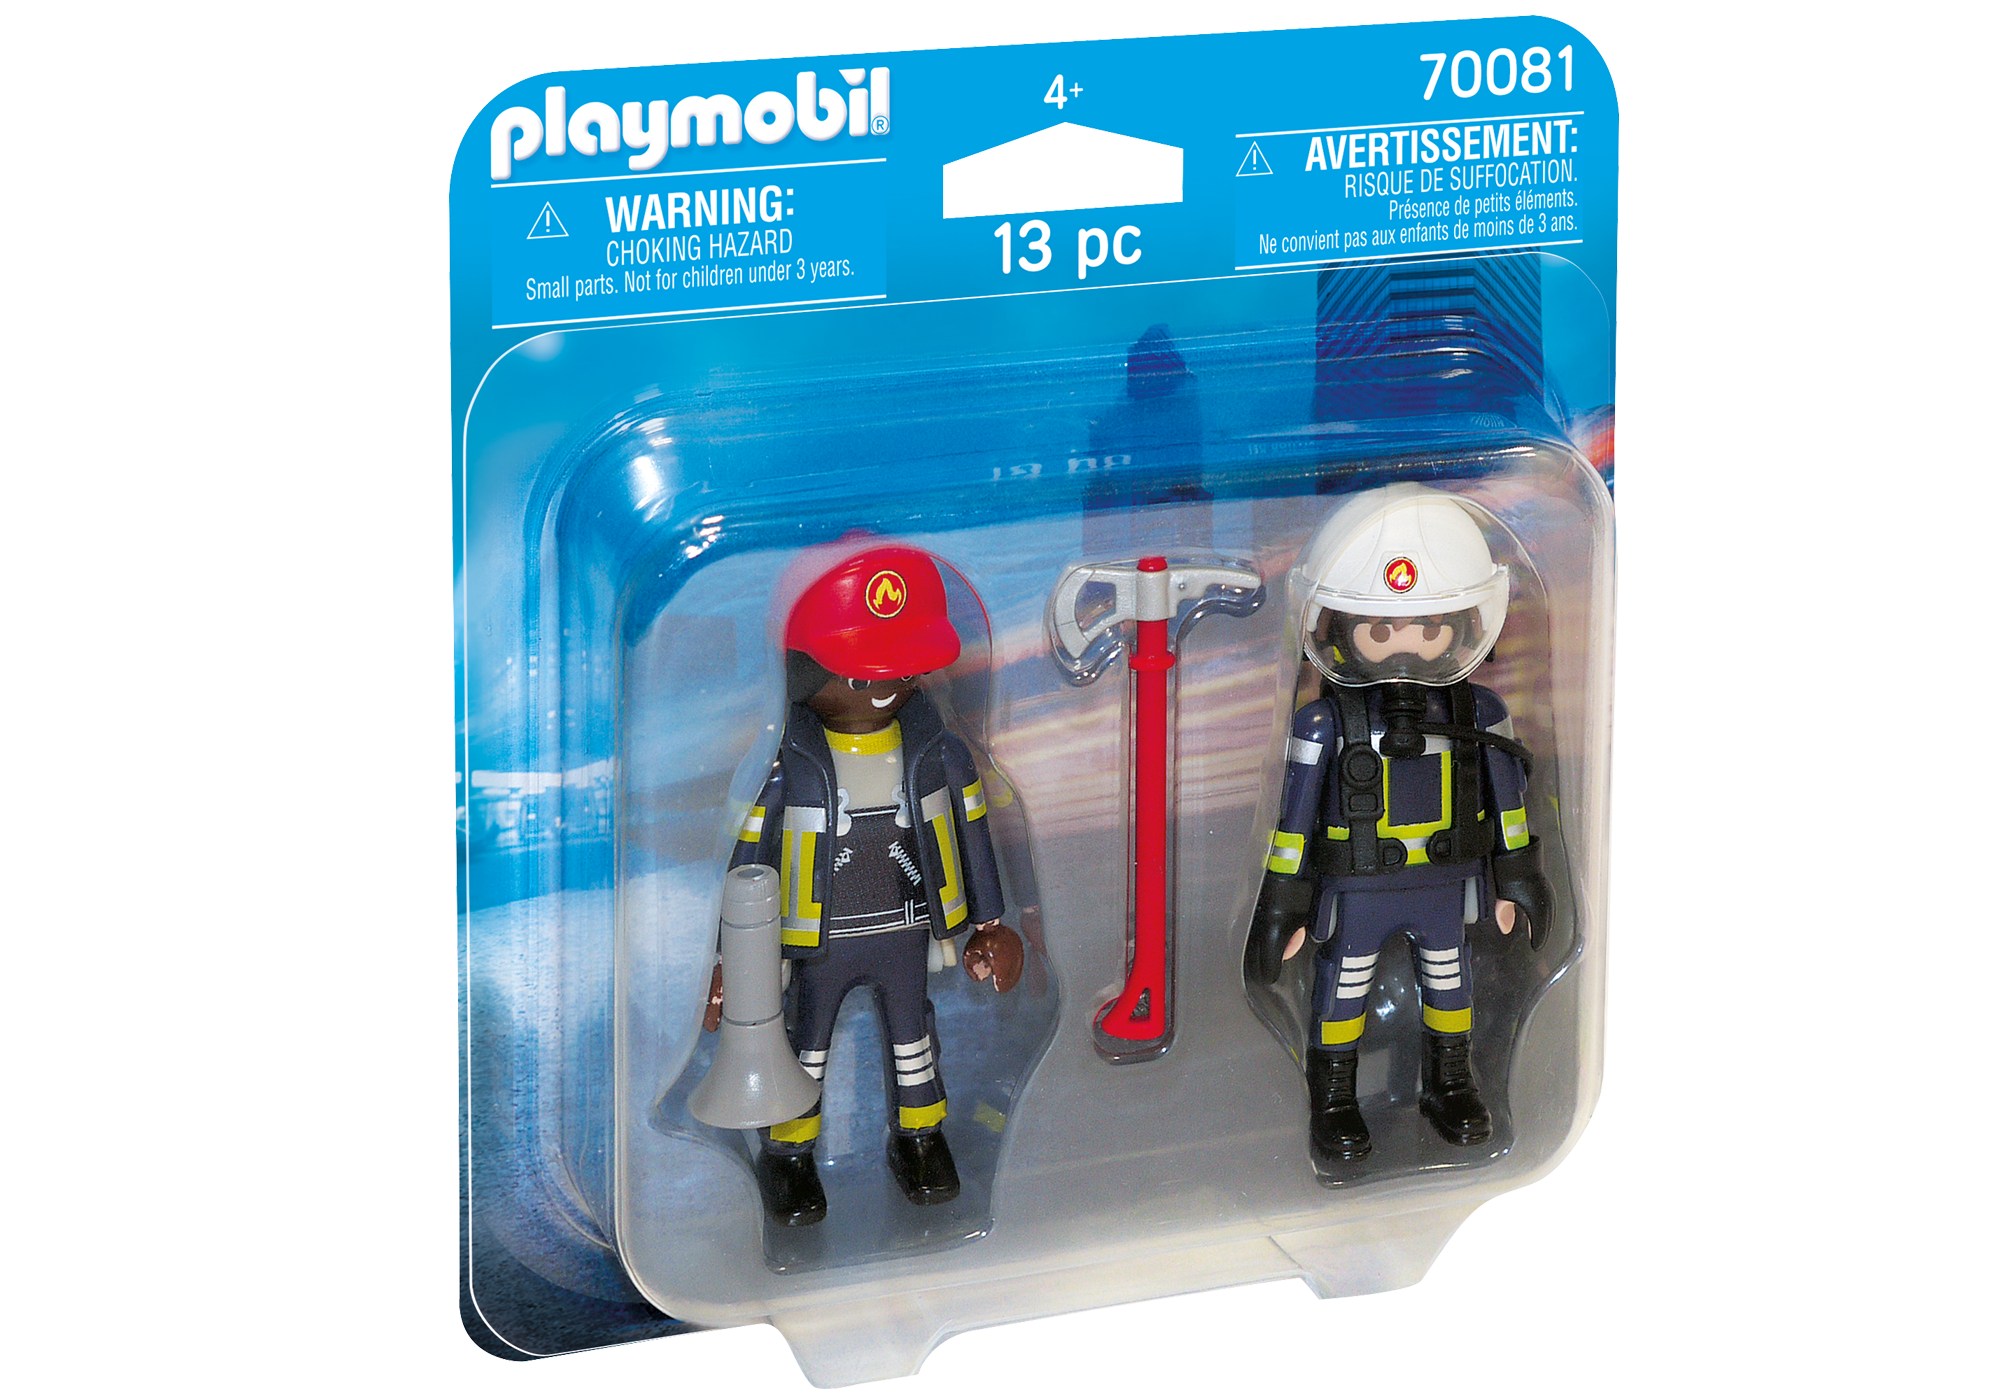 http://media.playmobil.com/i/playmobil/70081_product_box_front/DuoPack Feuerwehrmann und - frau